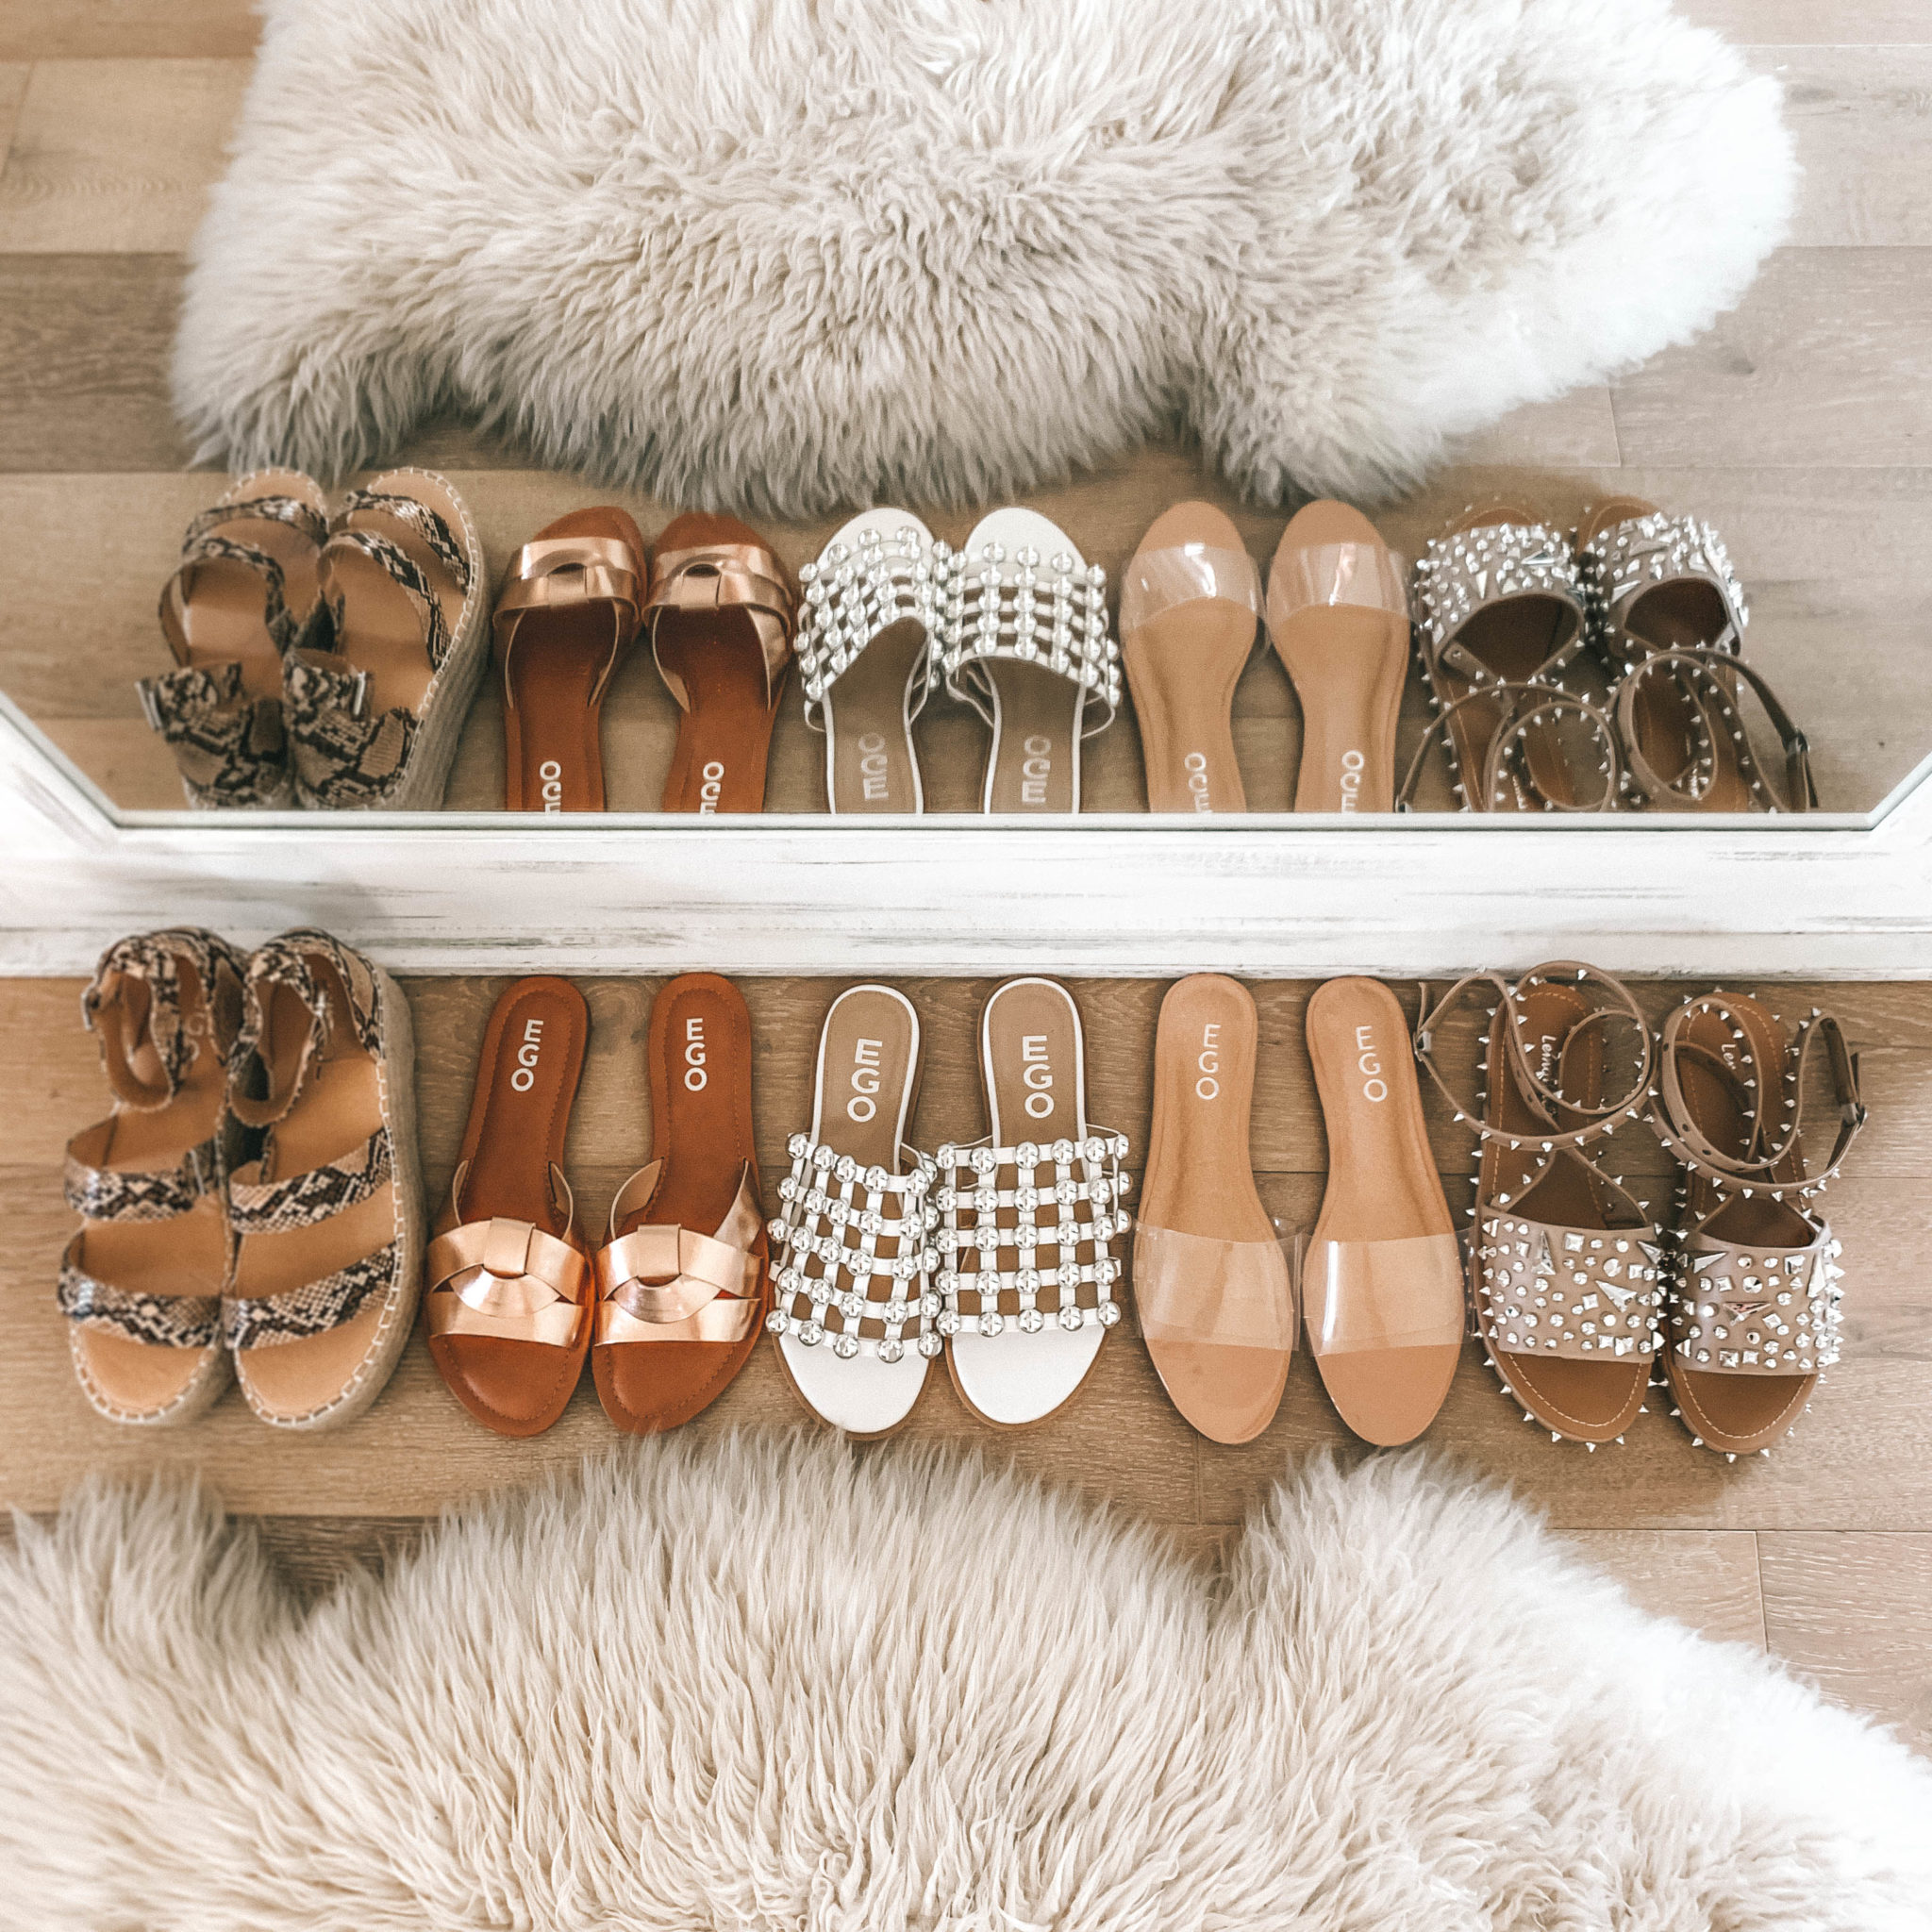 5 Must Have Affordable EGO Sandals for Summer by popular Austin fashion blog, Dressed to Kill: image of 5 pairs of EGO sandals lined up next to each other.